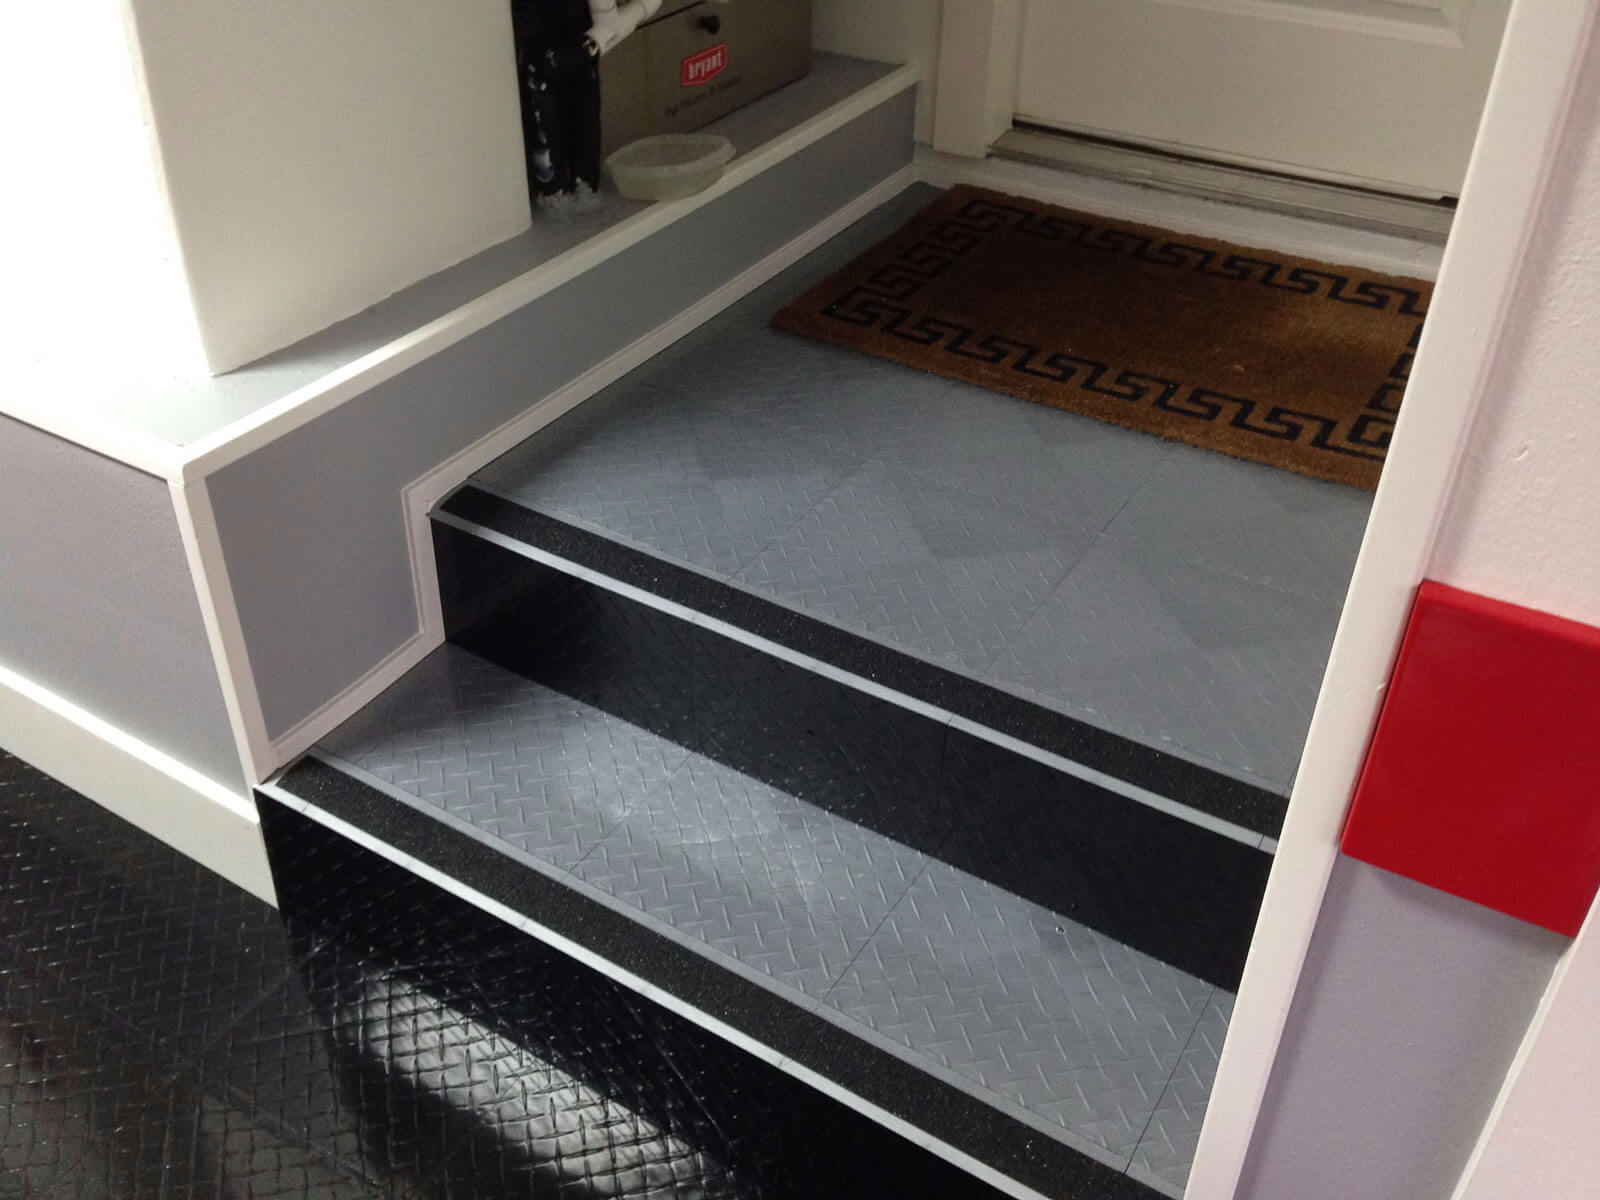 RaceDeck Diamond with TuffShield on the stairs transitions from the house to the garage.